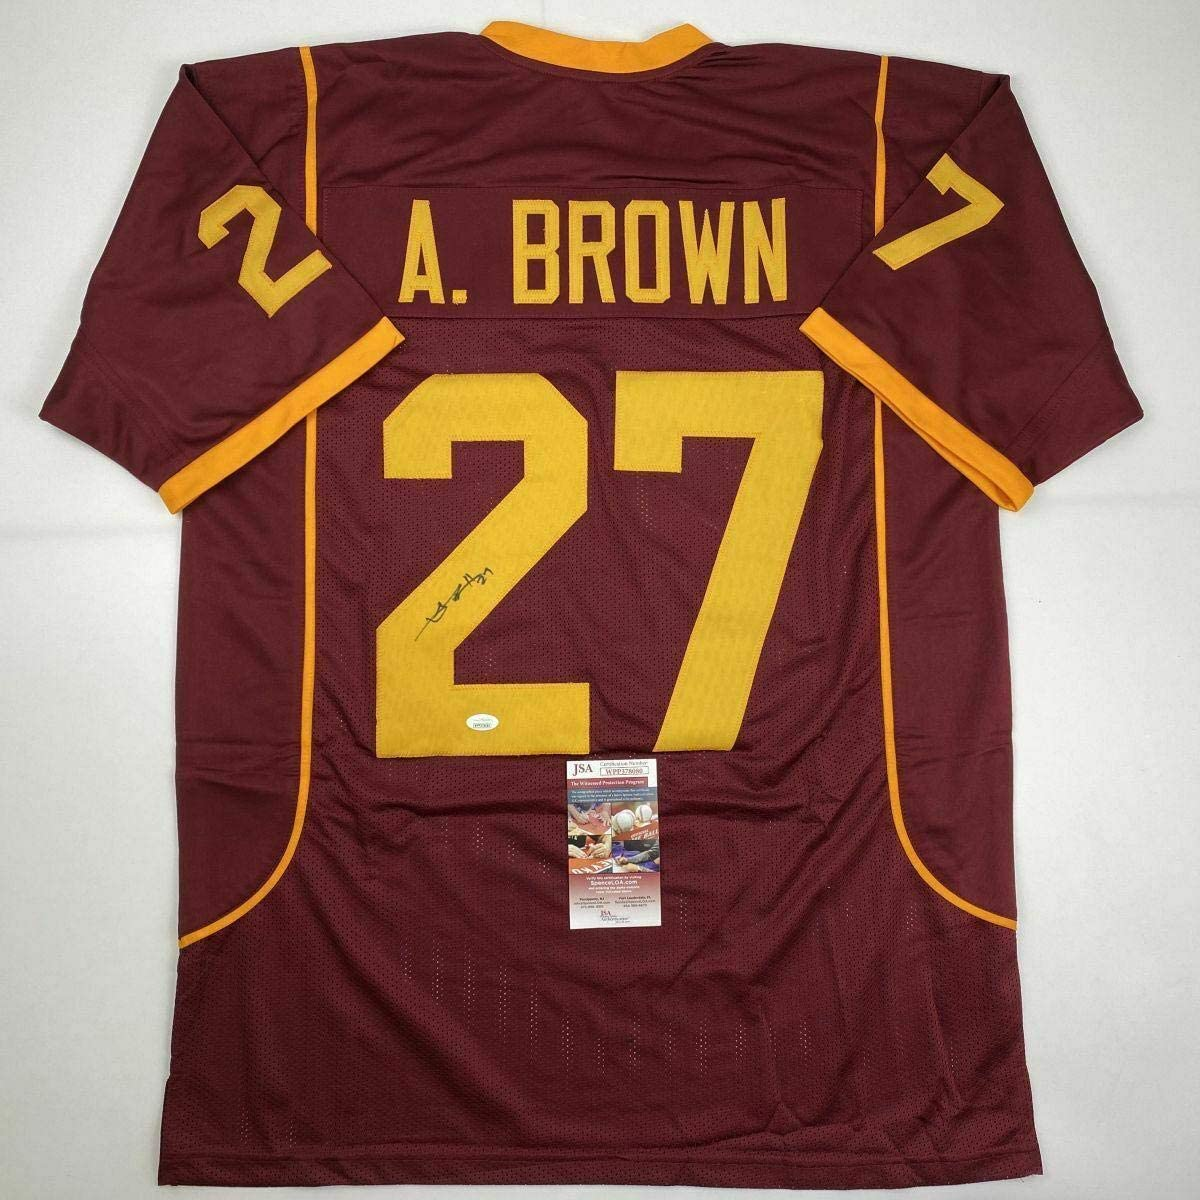 Autographed/Signed ANTONIO BROWN Central Michigan Maroon College Jersey JSA COA - Autographed NFL Jerseys